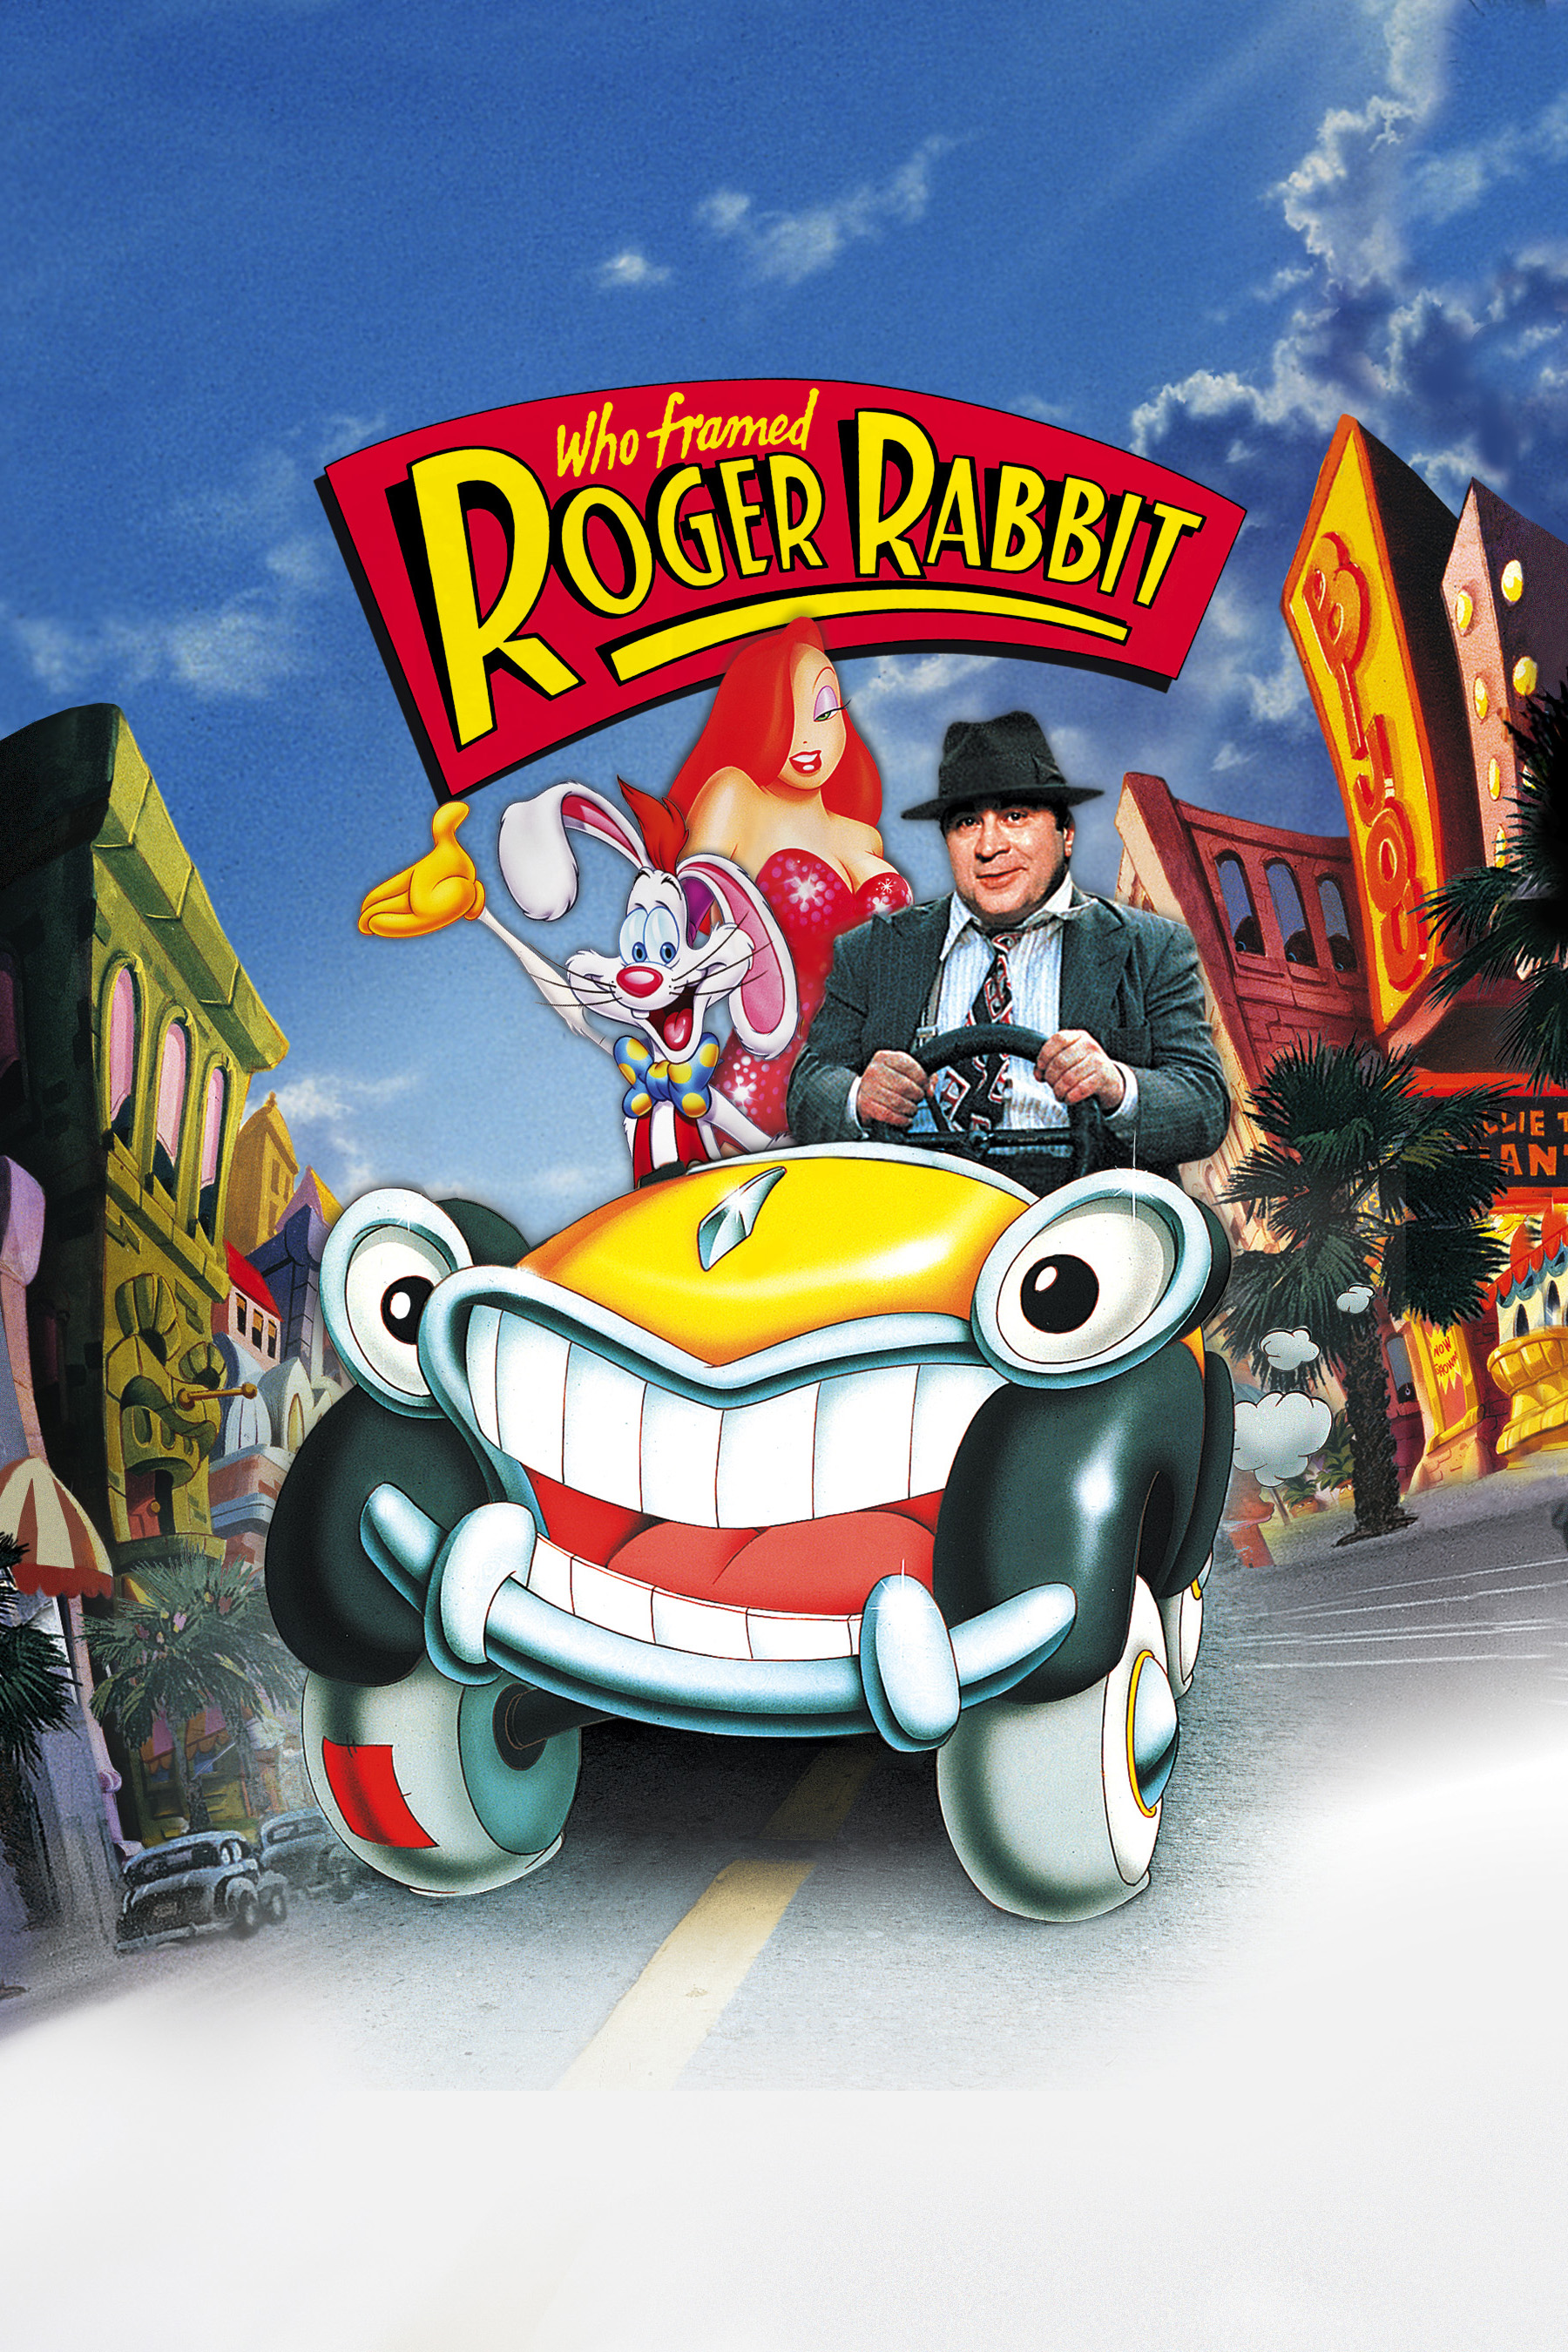 Who Framed Roger Rabbit | Transcripts Wiki | FANDOM powered by Wikia